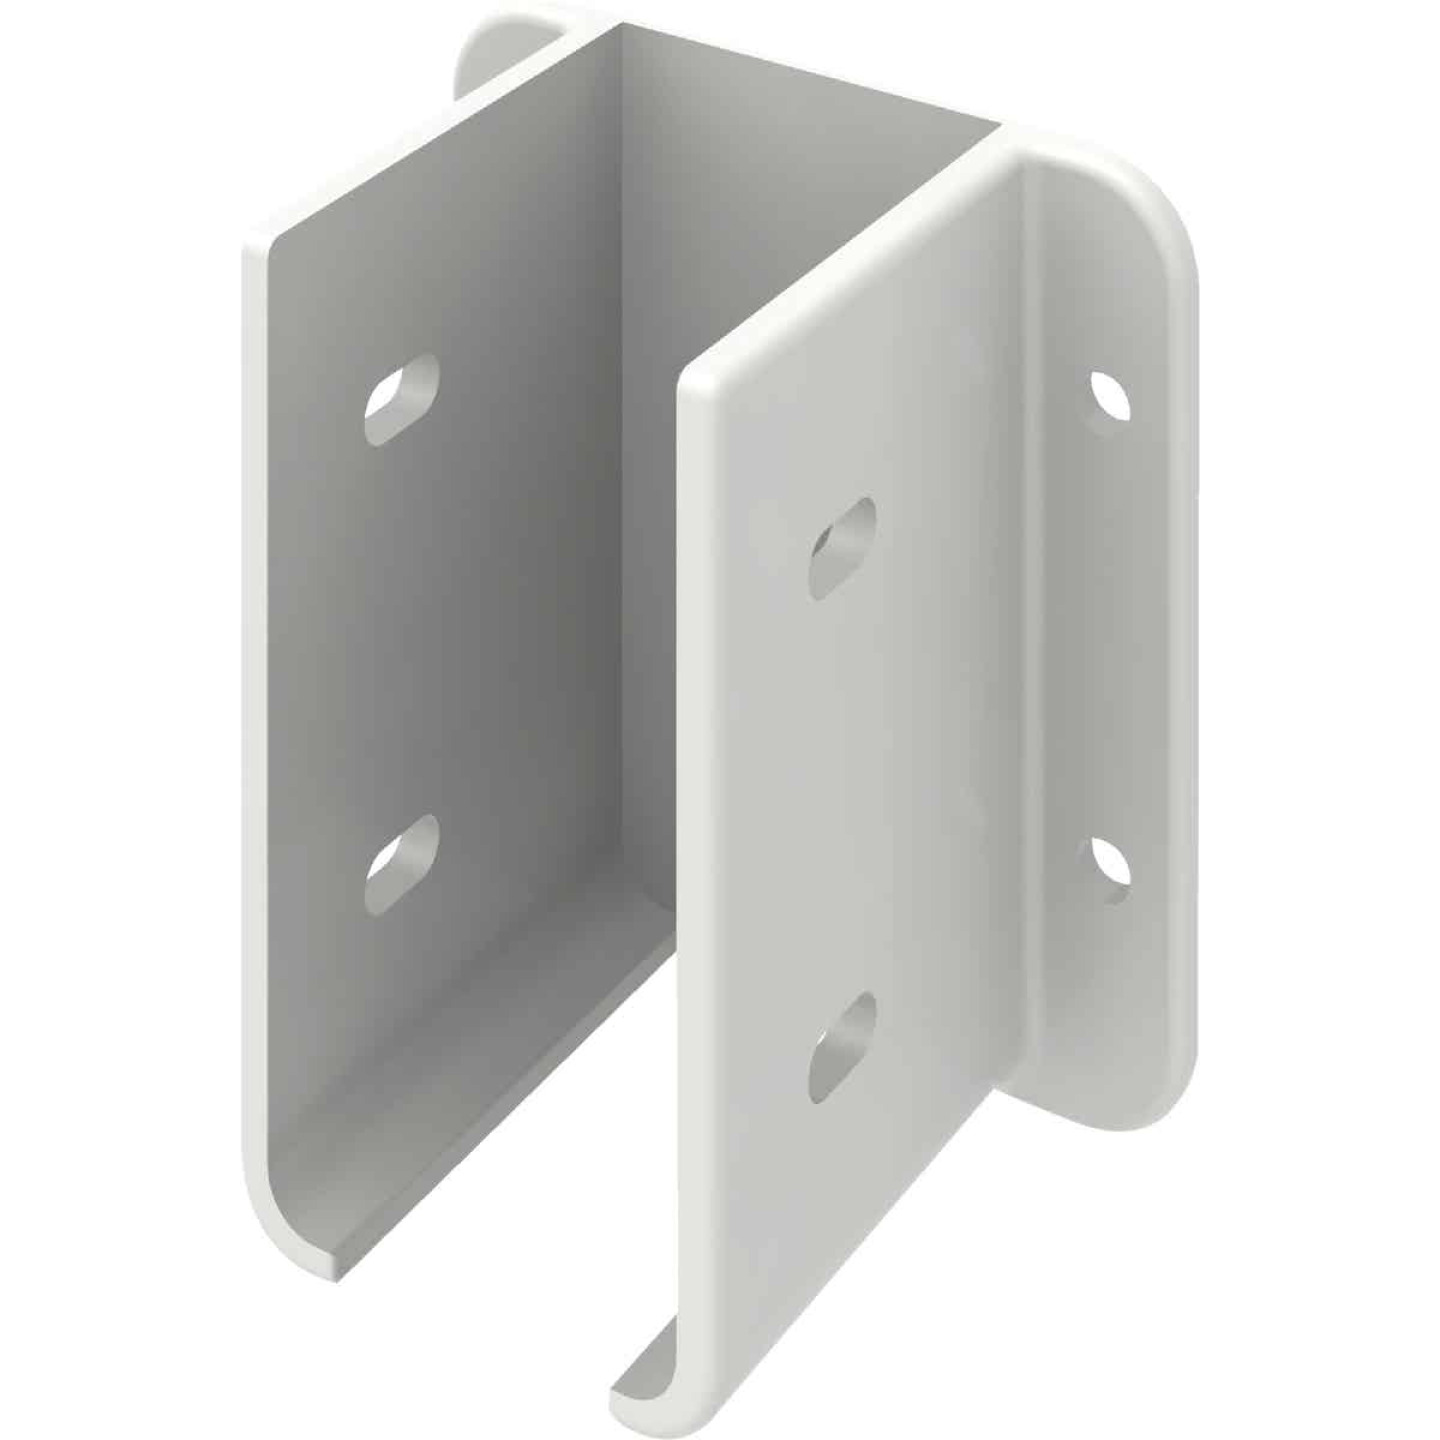 Outdoor Essentials 1-1/2 In. x 3 In. White Vinyl Fence Panel Mounting Kit (2-Pack) Image 3